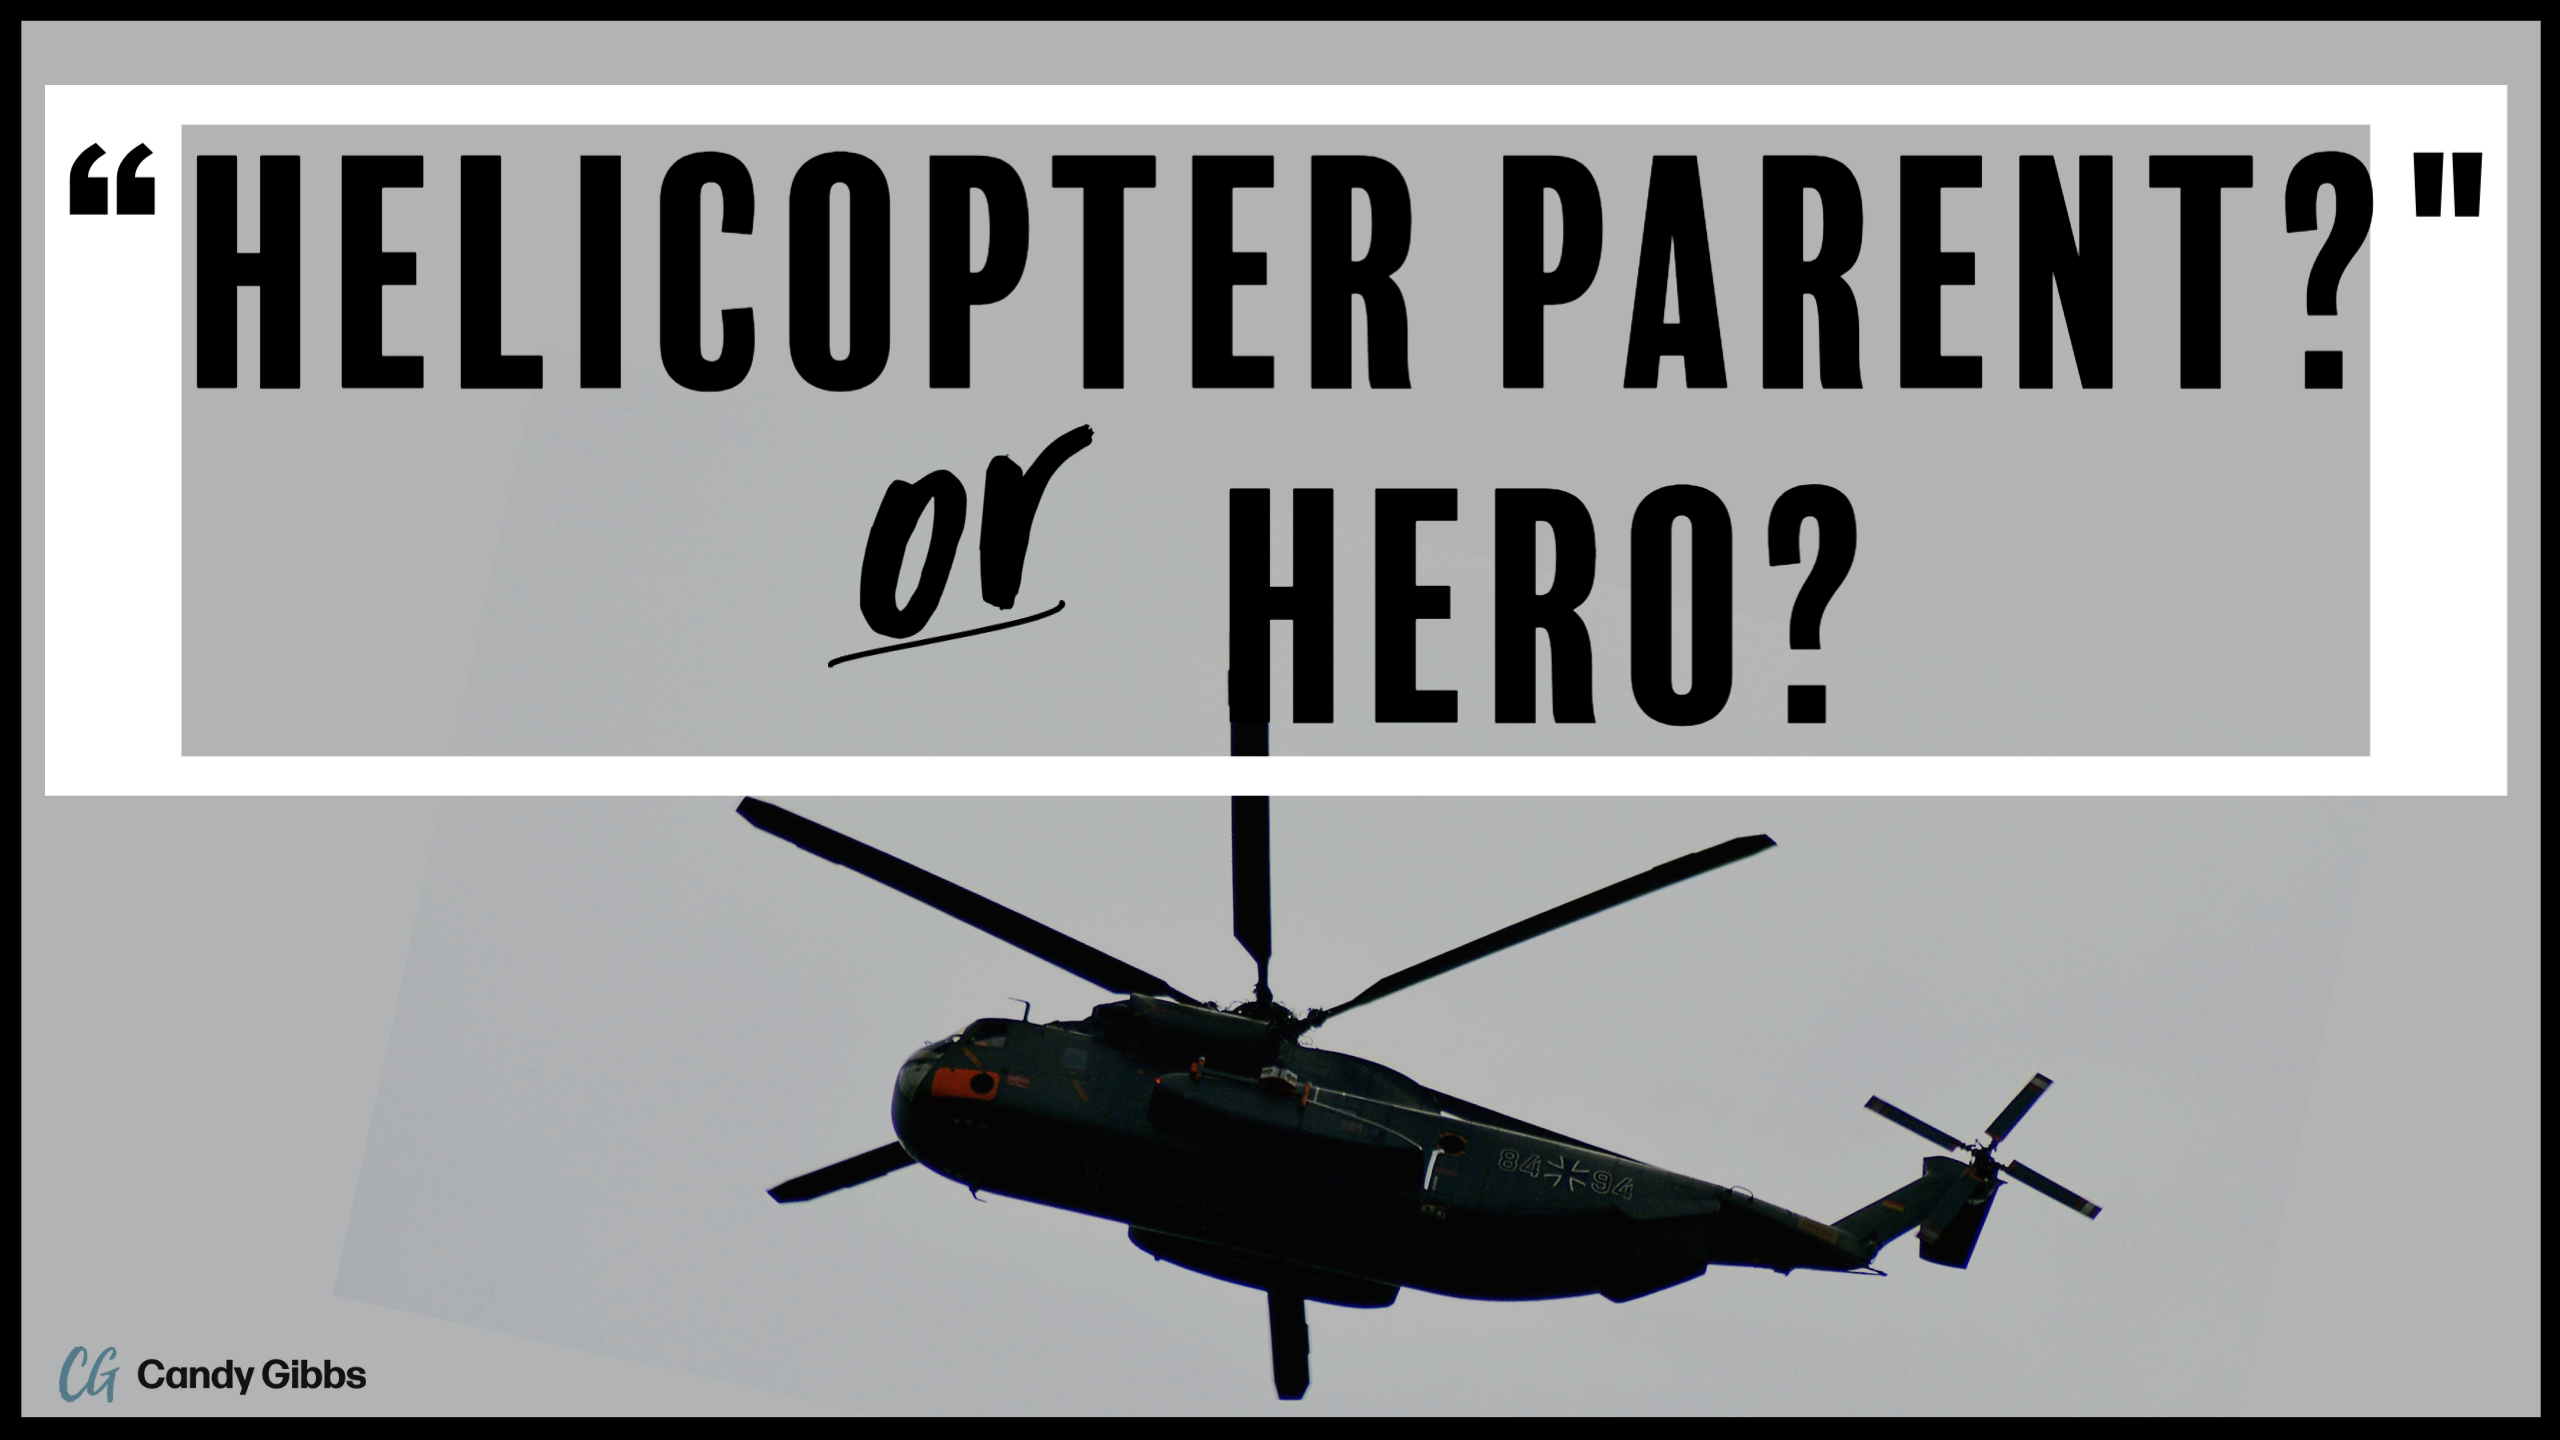 Blog- Helicopter Parent